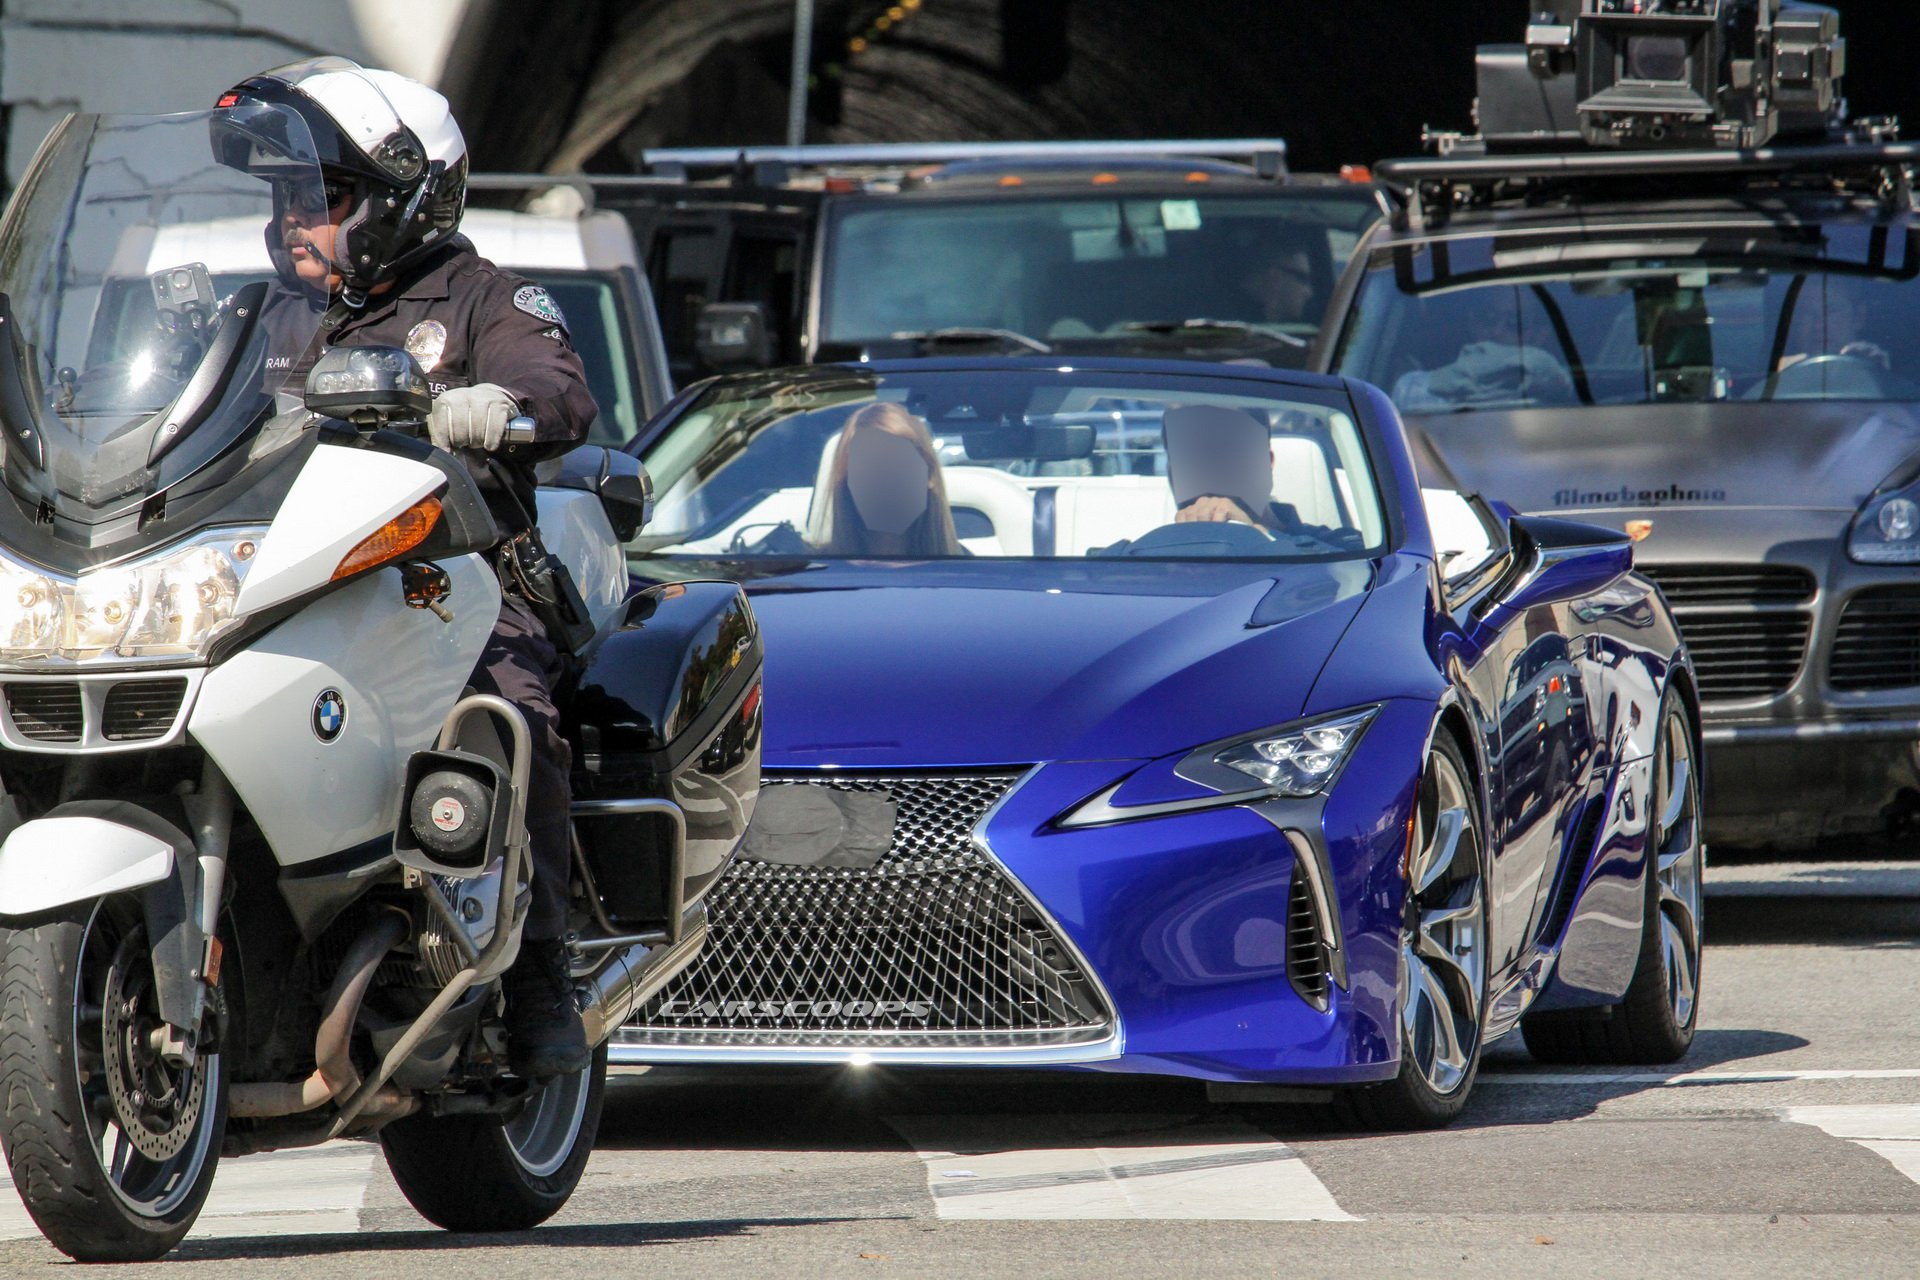 The open-top Lexus flagship is ready for its official debut at the Los Angeles Auto Show coming up in November. However, thanks to attentive car spotters, we no longer need to wait until then to see what it looks like.